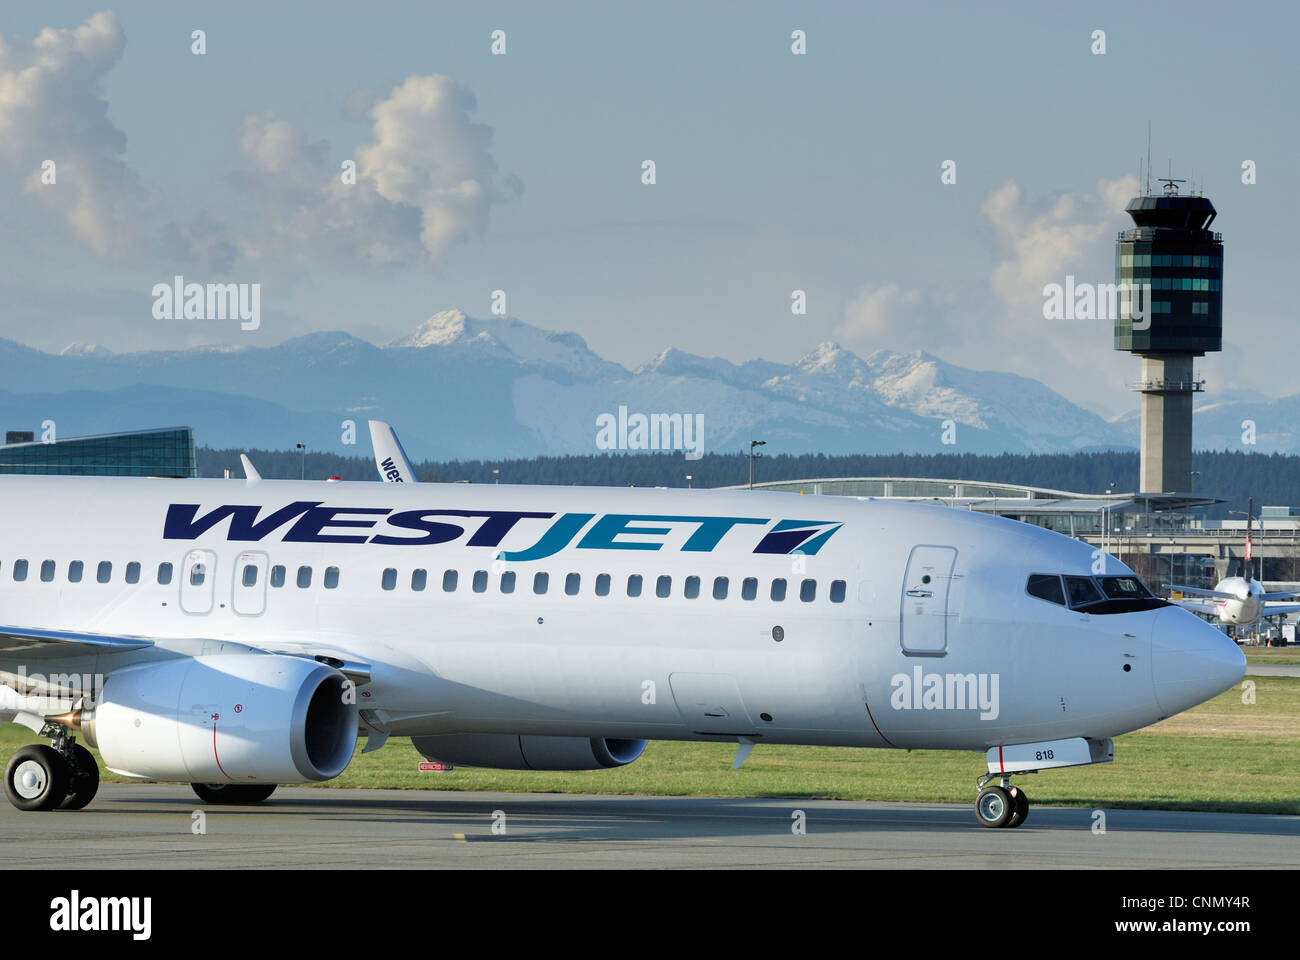 Close-up of a Westjet C-GWRG Boeing 737 (800) airliner taxiing down the runway at the Vancouver International airport. - Stock Image